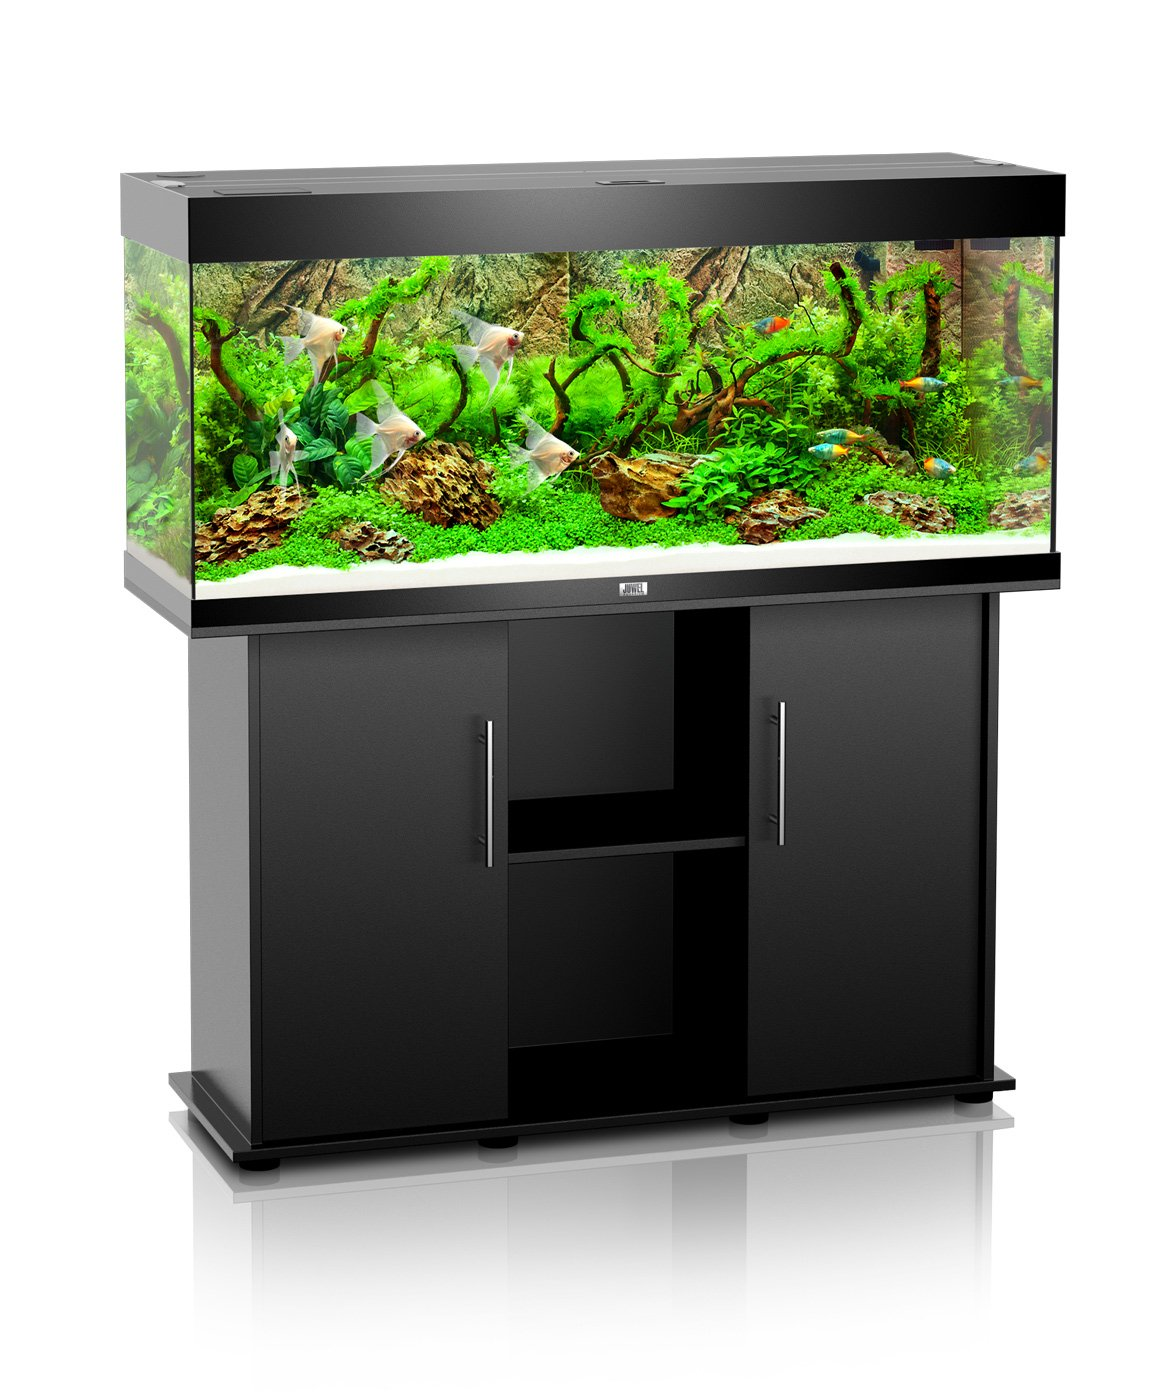 meuble aquarium 80x30. Black Bedroom Furniture Sets. Home Design Ideas